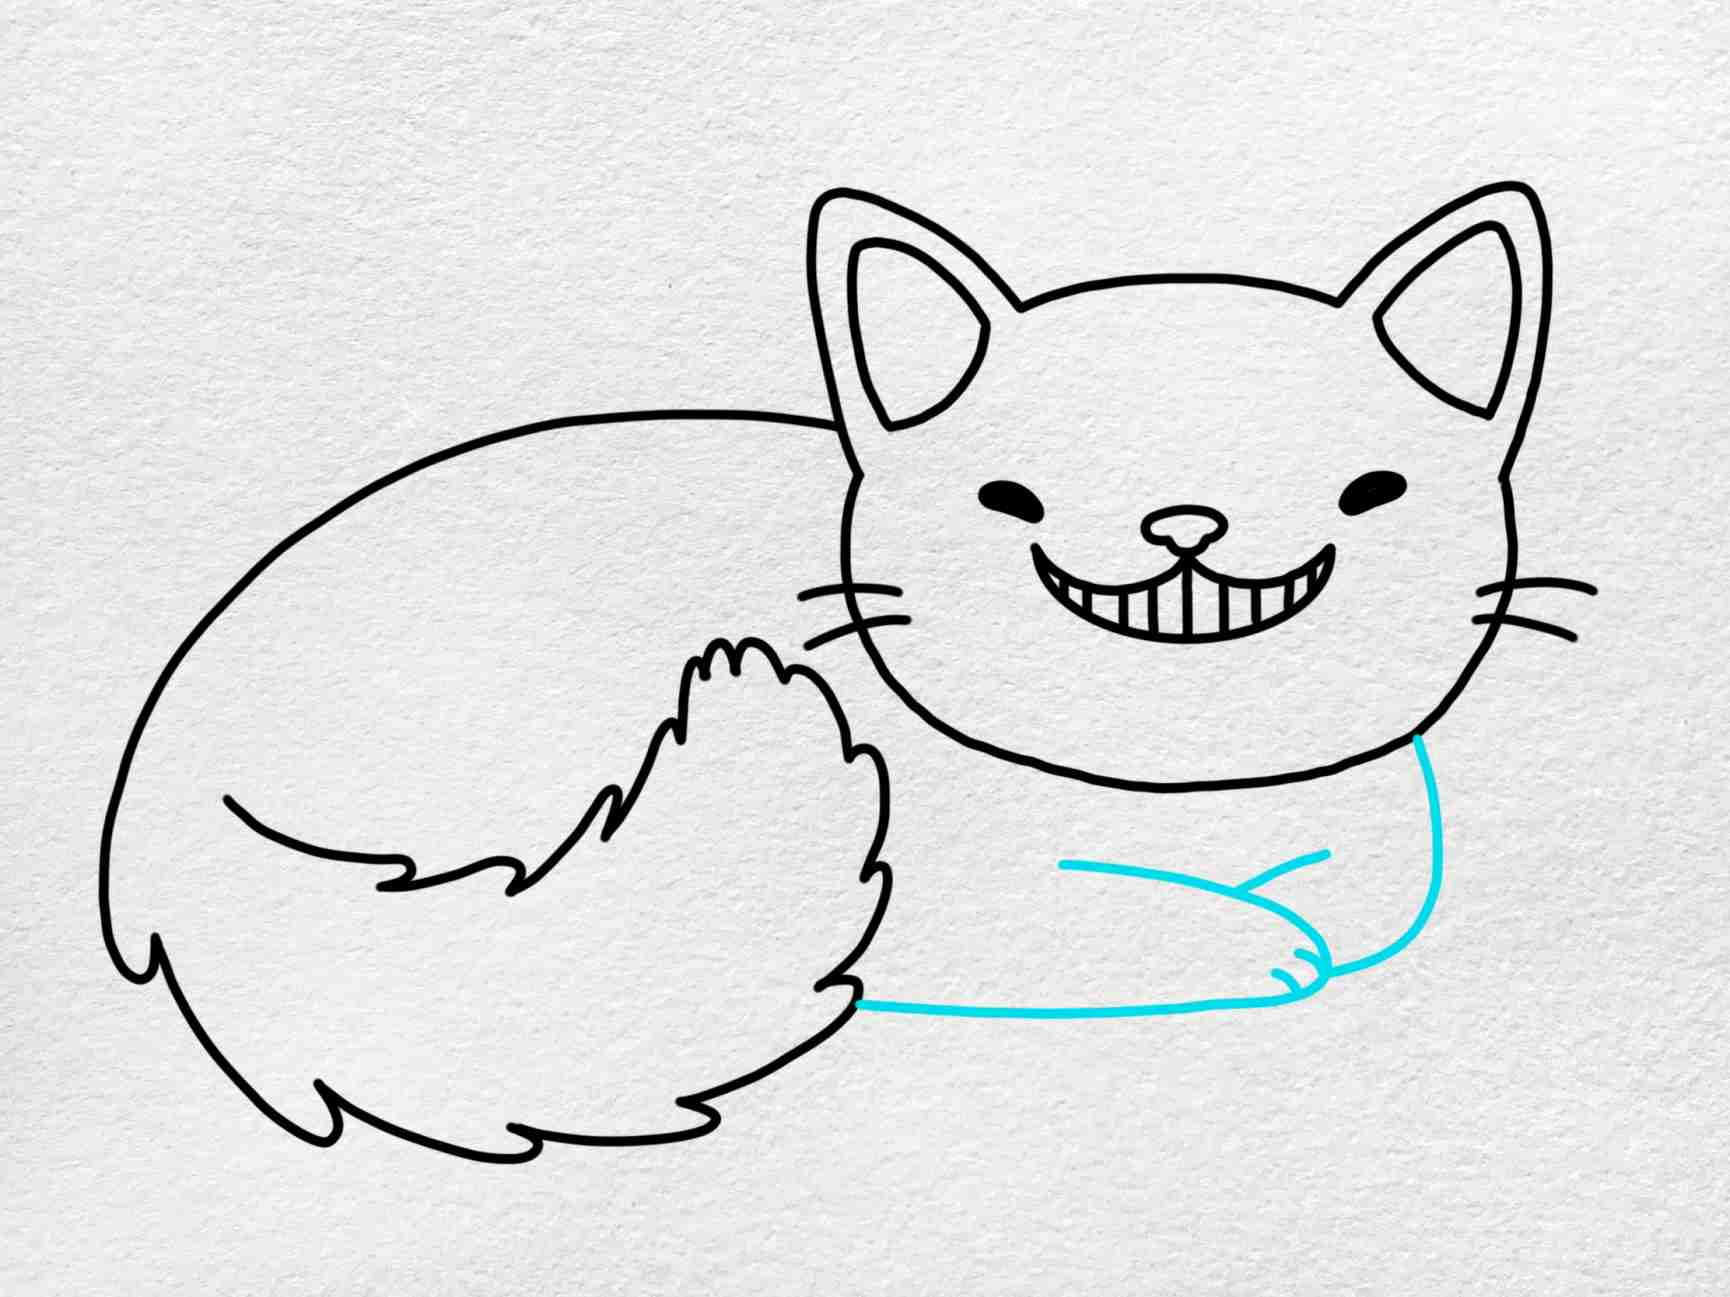 Cheshire Cat Drawing: Step 5